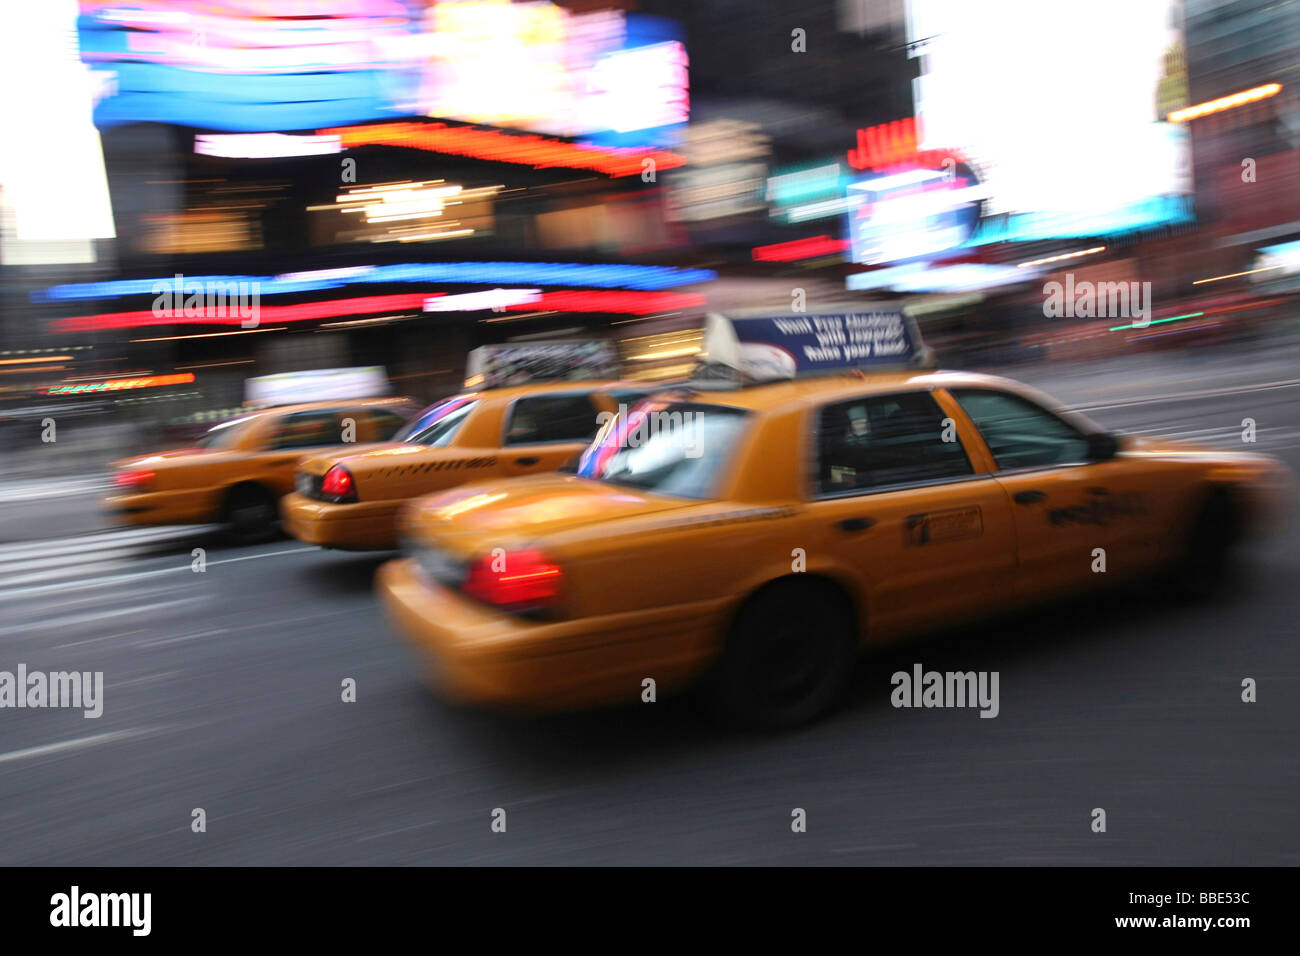 Taxi cabs in Times Square, Manhattan, New York City, USA - Stock Image